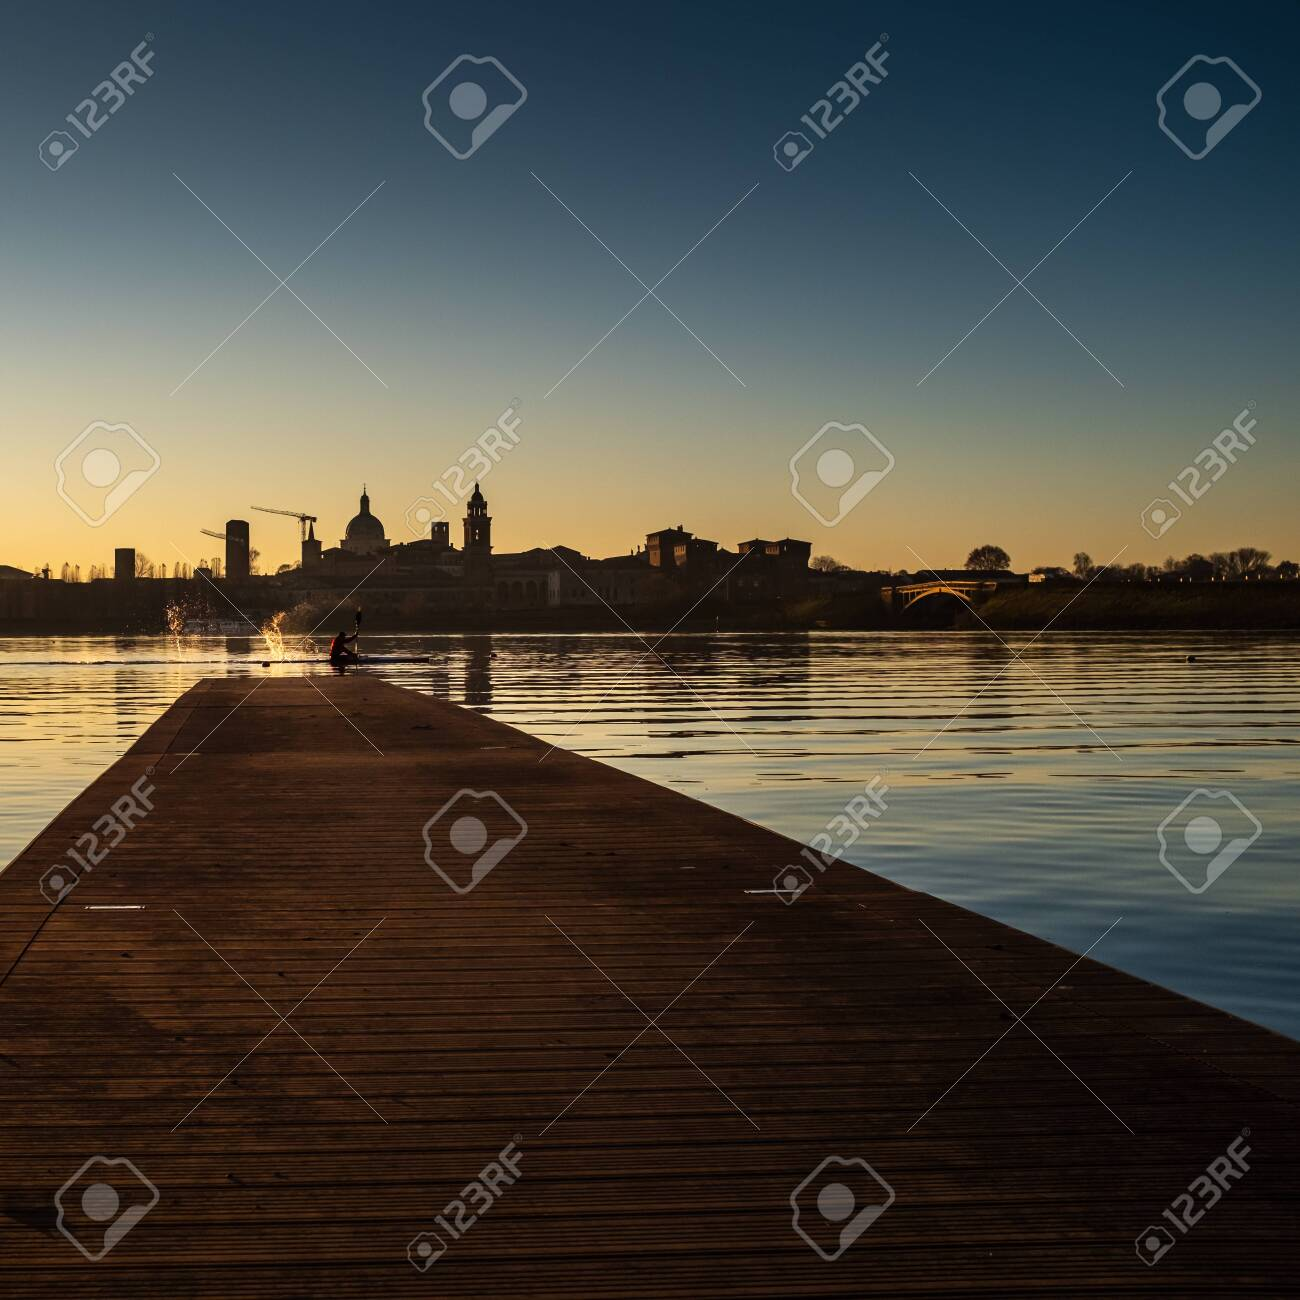 Adult male kayaker splashing water with paddle while kayaking on the Lago Inferiore (Inferior Lake) in front of the suggestive medieval profile of the Old Town of Mantua (Lombardy,Italy). - 138447488